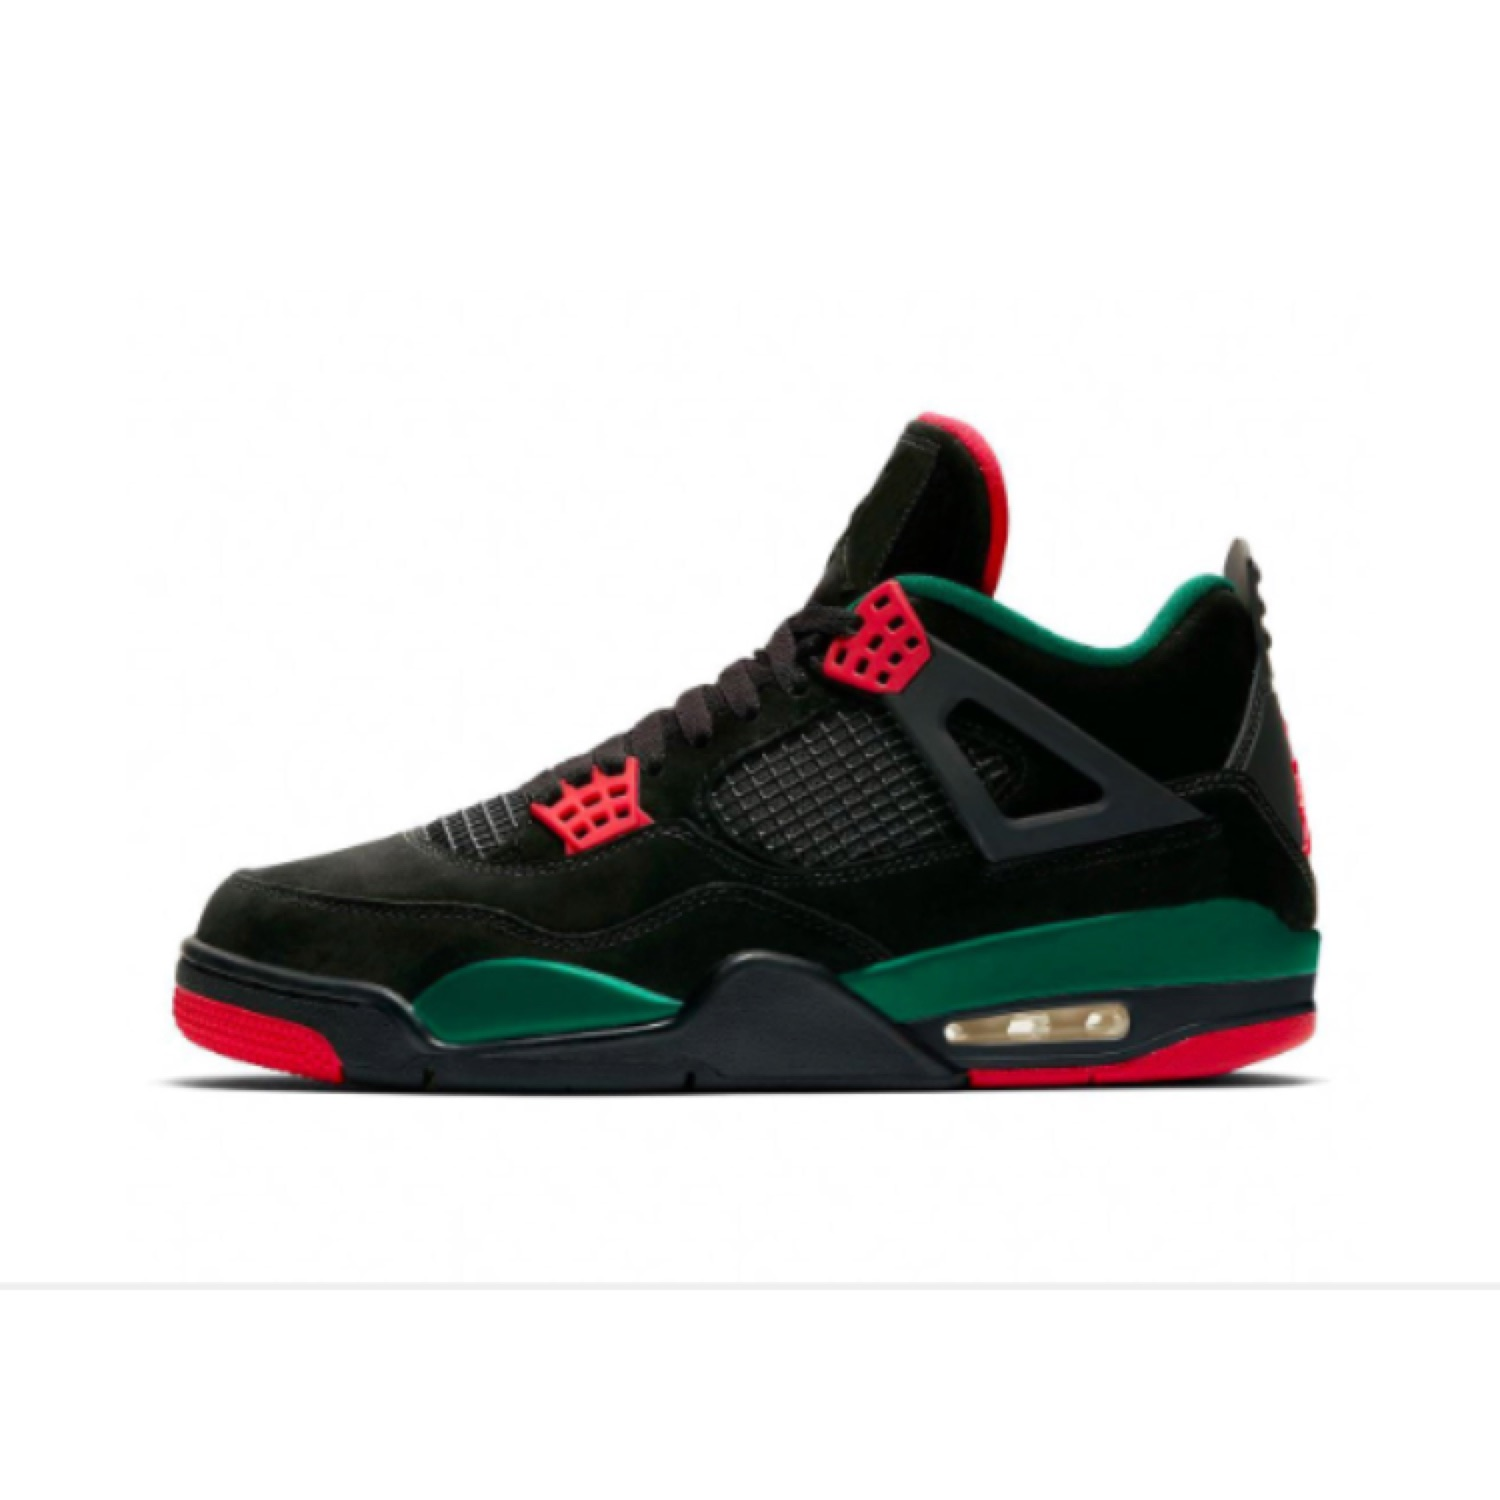 uk availability ef6f6 369c2 Jordan 4 Black Gucci Pre Order Size 13